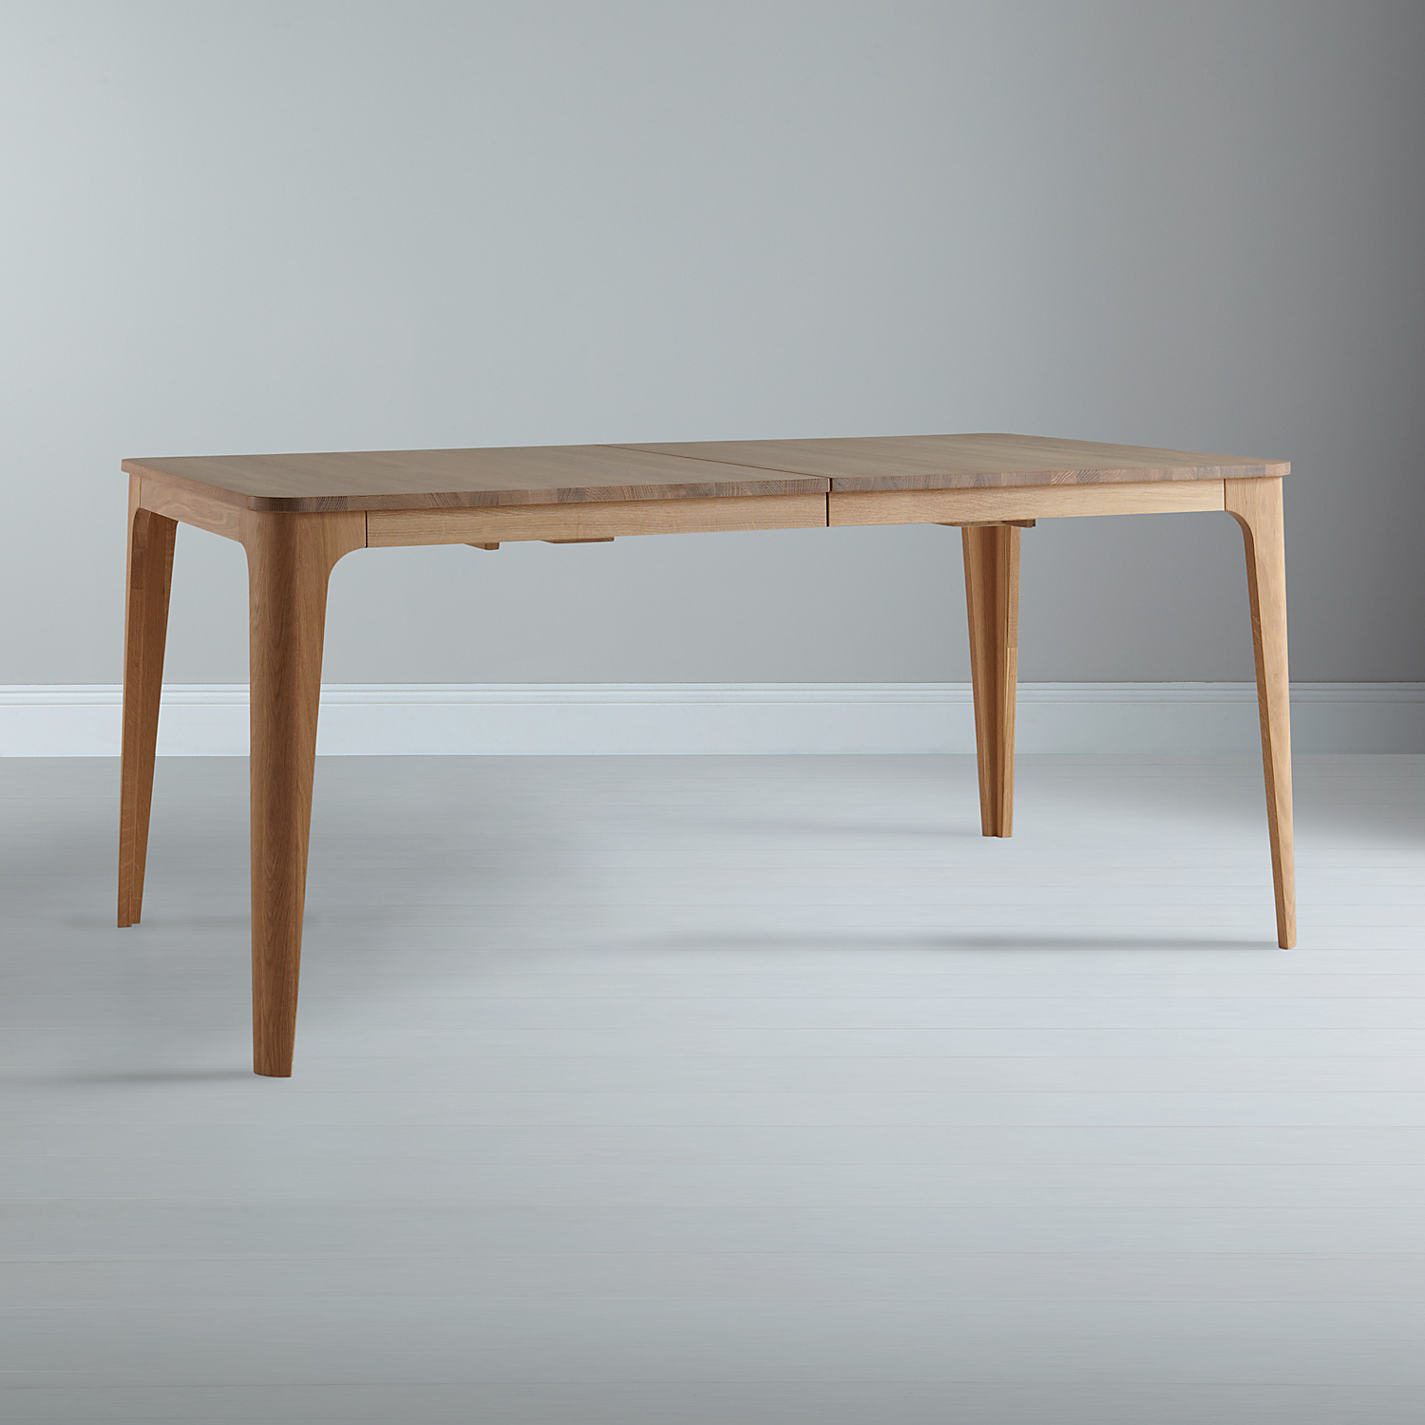 Buy Ebbe Gehl For John Lewis Mira 6 8 Seater Extending Dining Table Online At